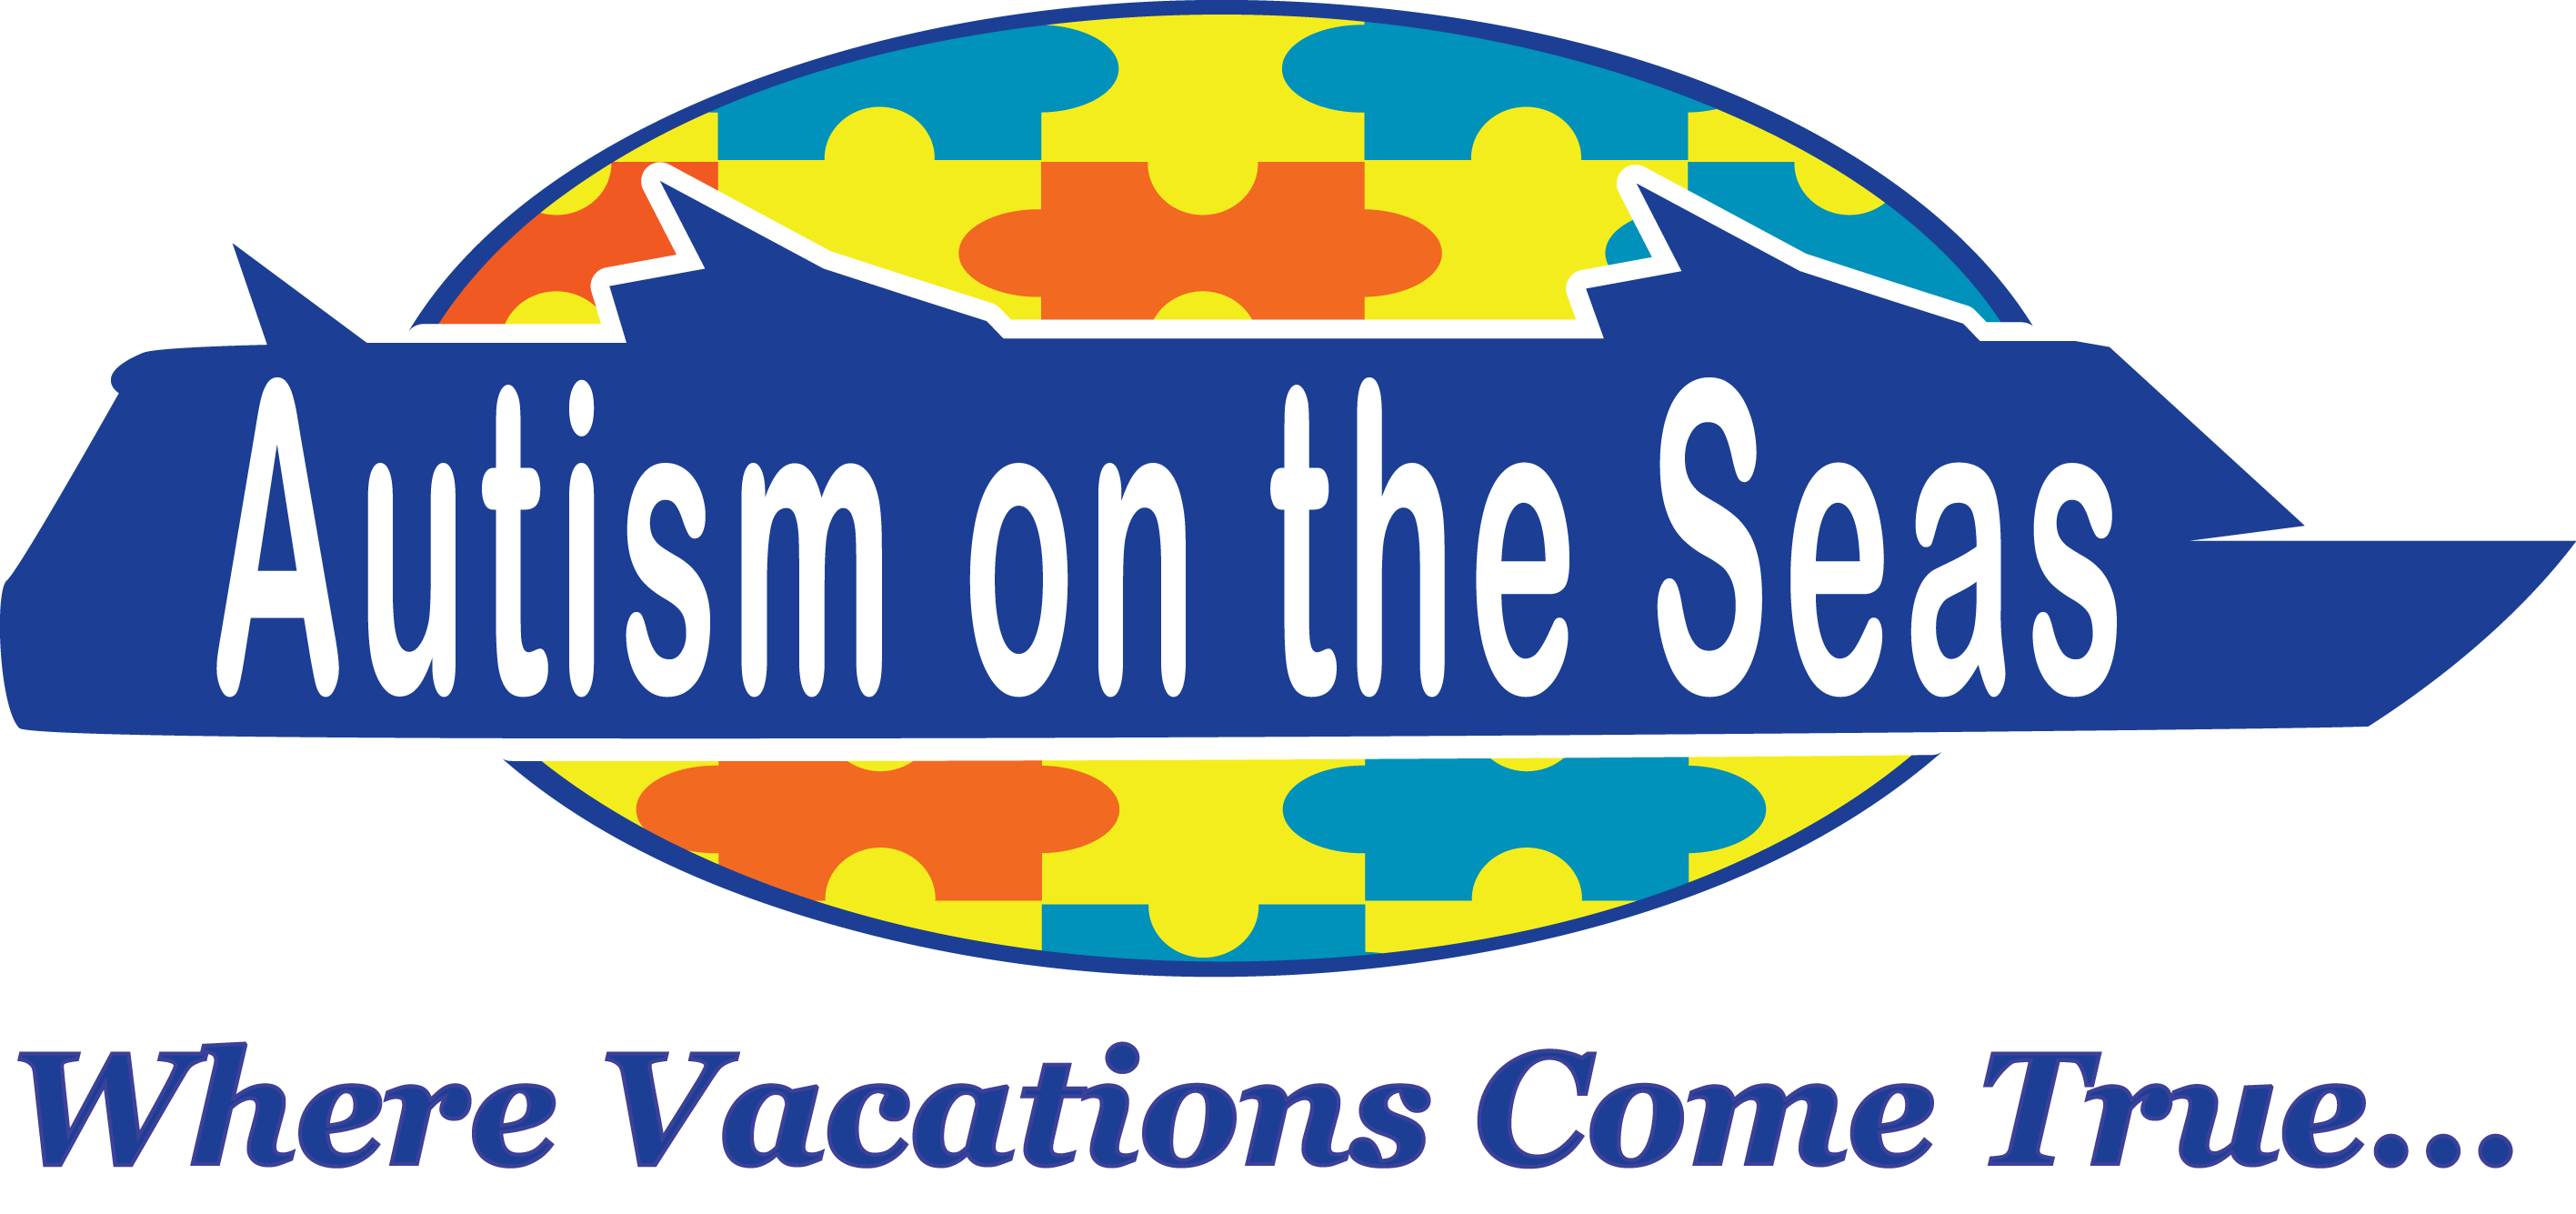 AutismontheSeas Logo 2015 Where Vacations Come True Blue